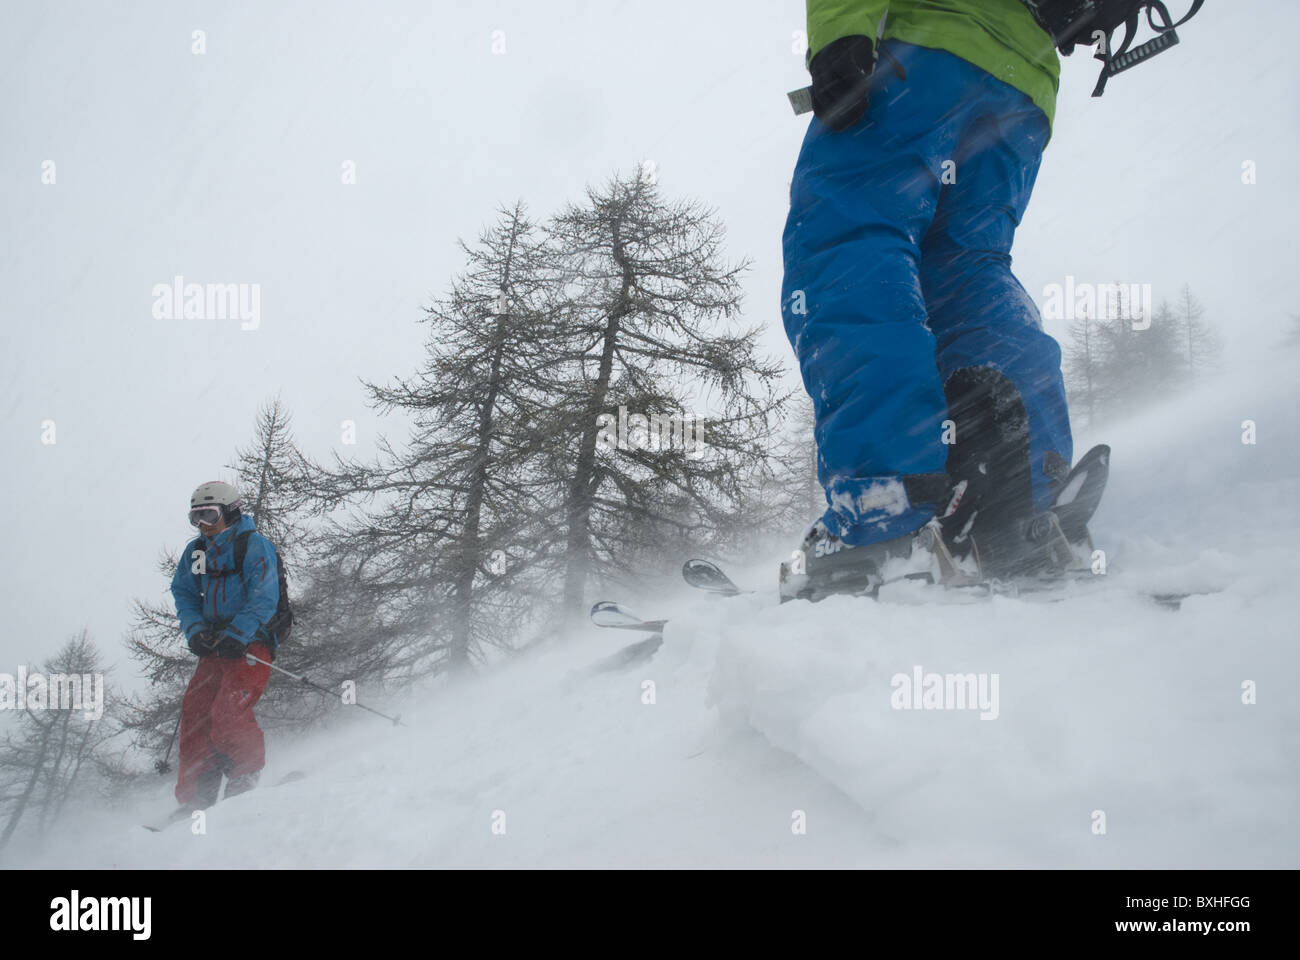 Two free skiers caught in bad weather in La Grave, french alps. - Stock Image